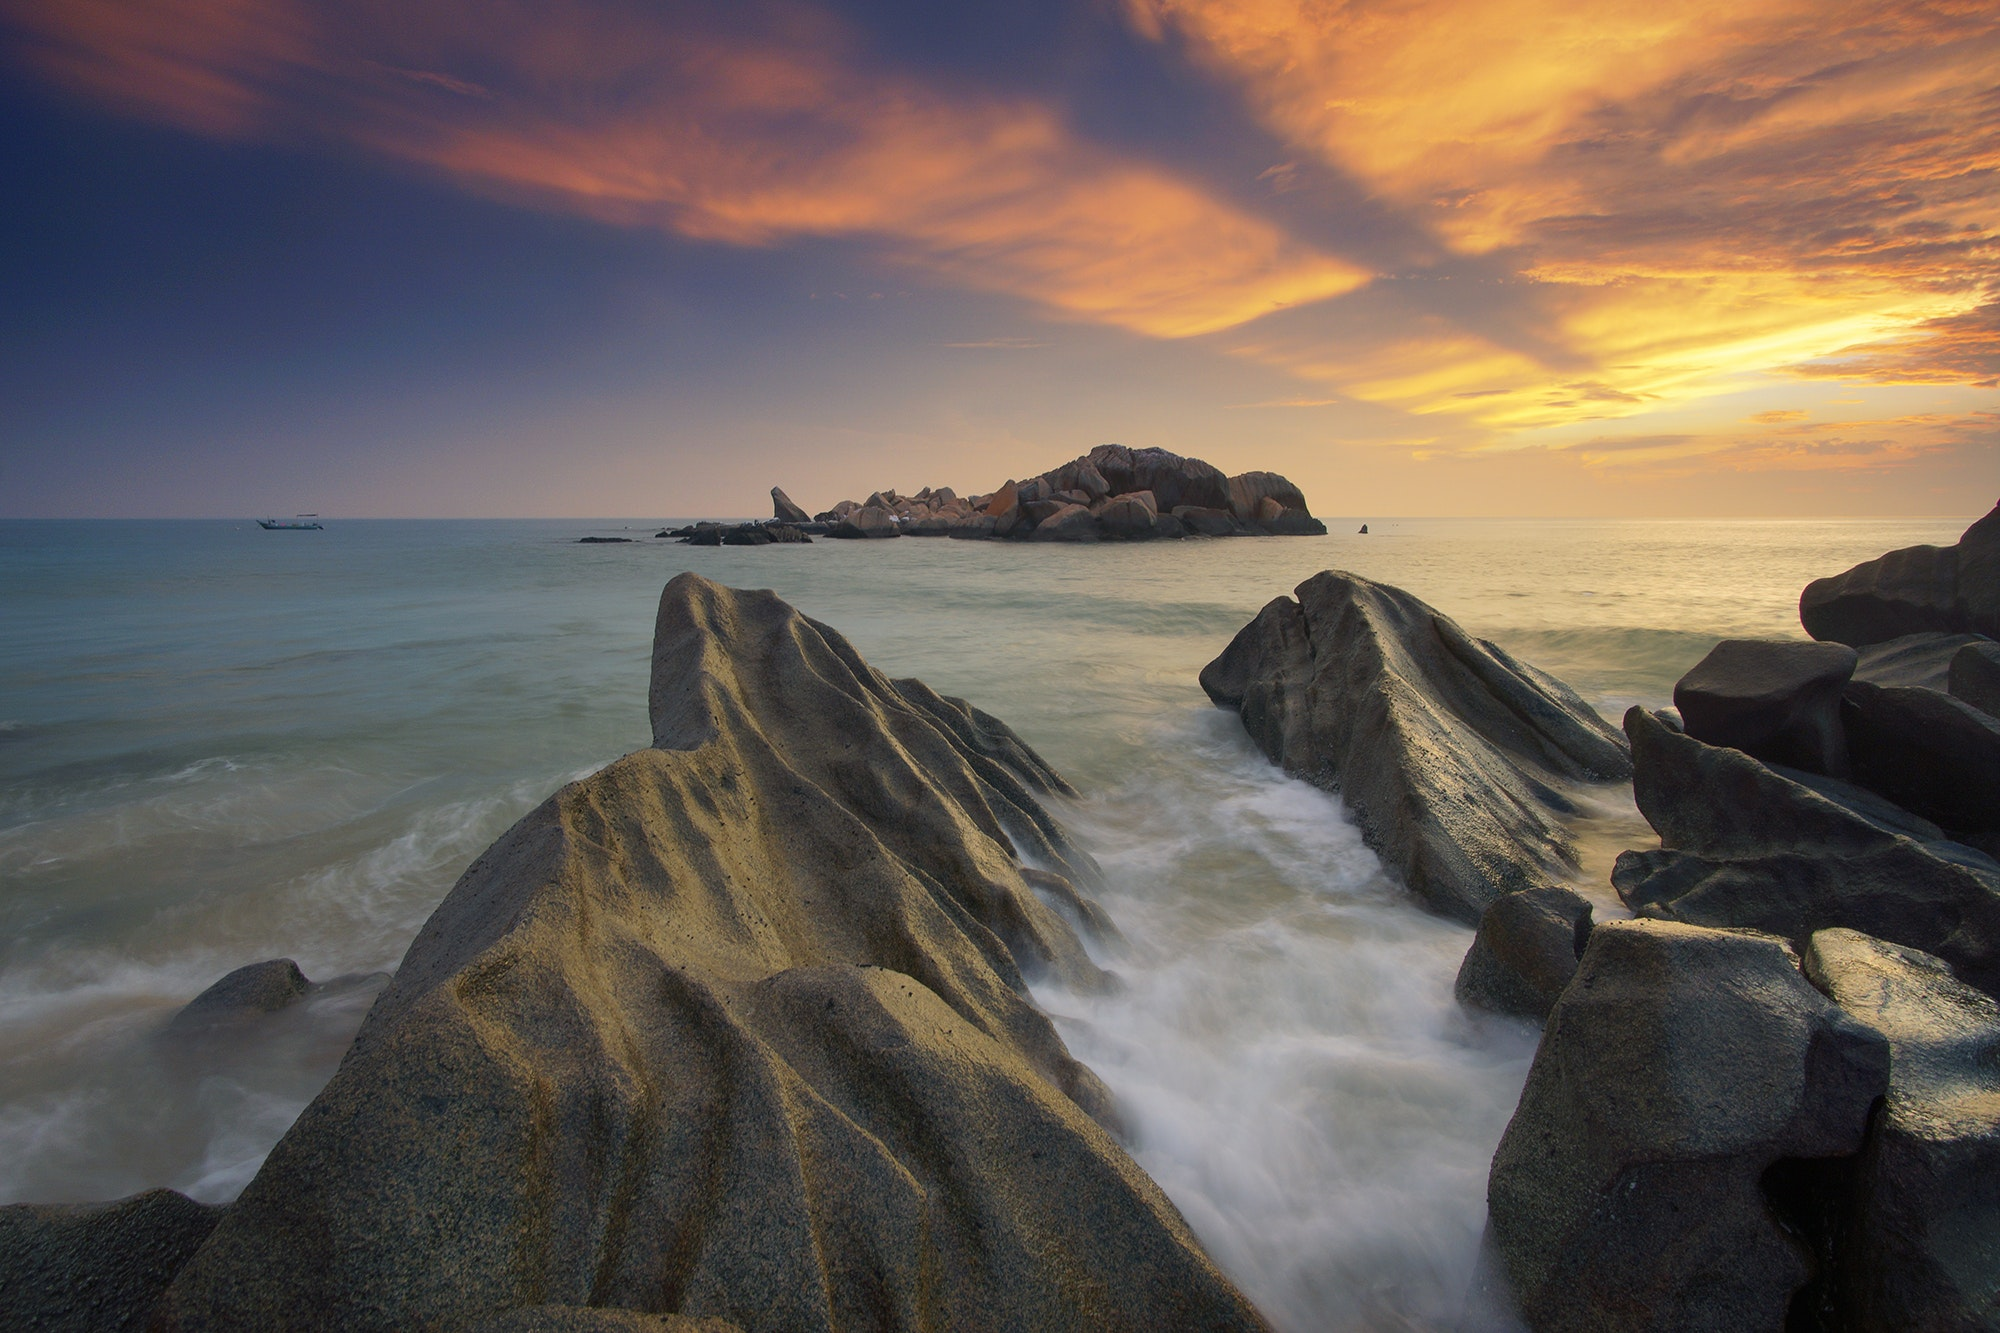 Gray Rock Formation Near Body of Water during Sunset, Beach, Seashore, Water, Travel, HQ Photo